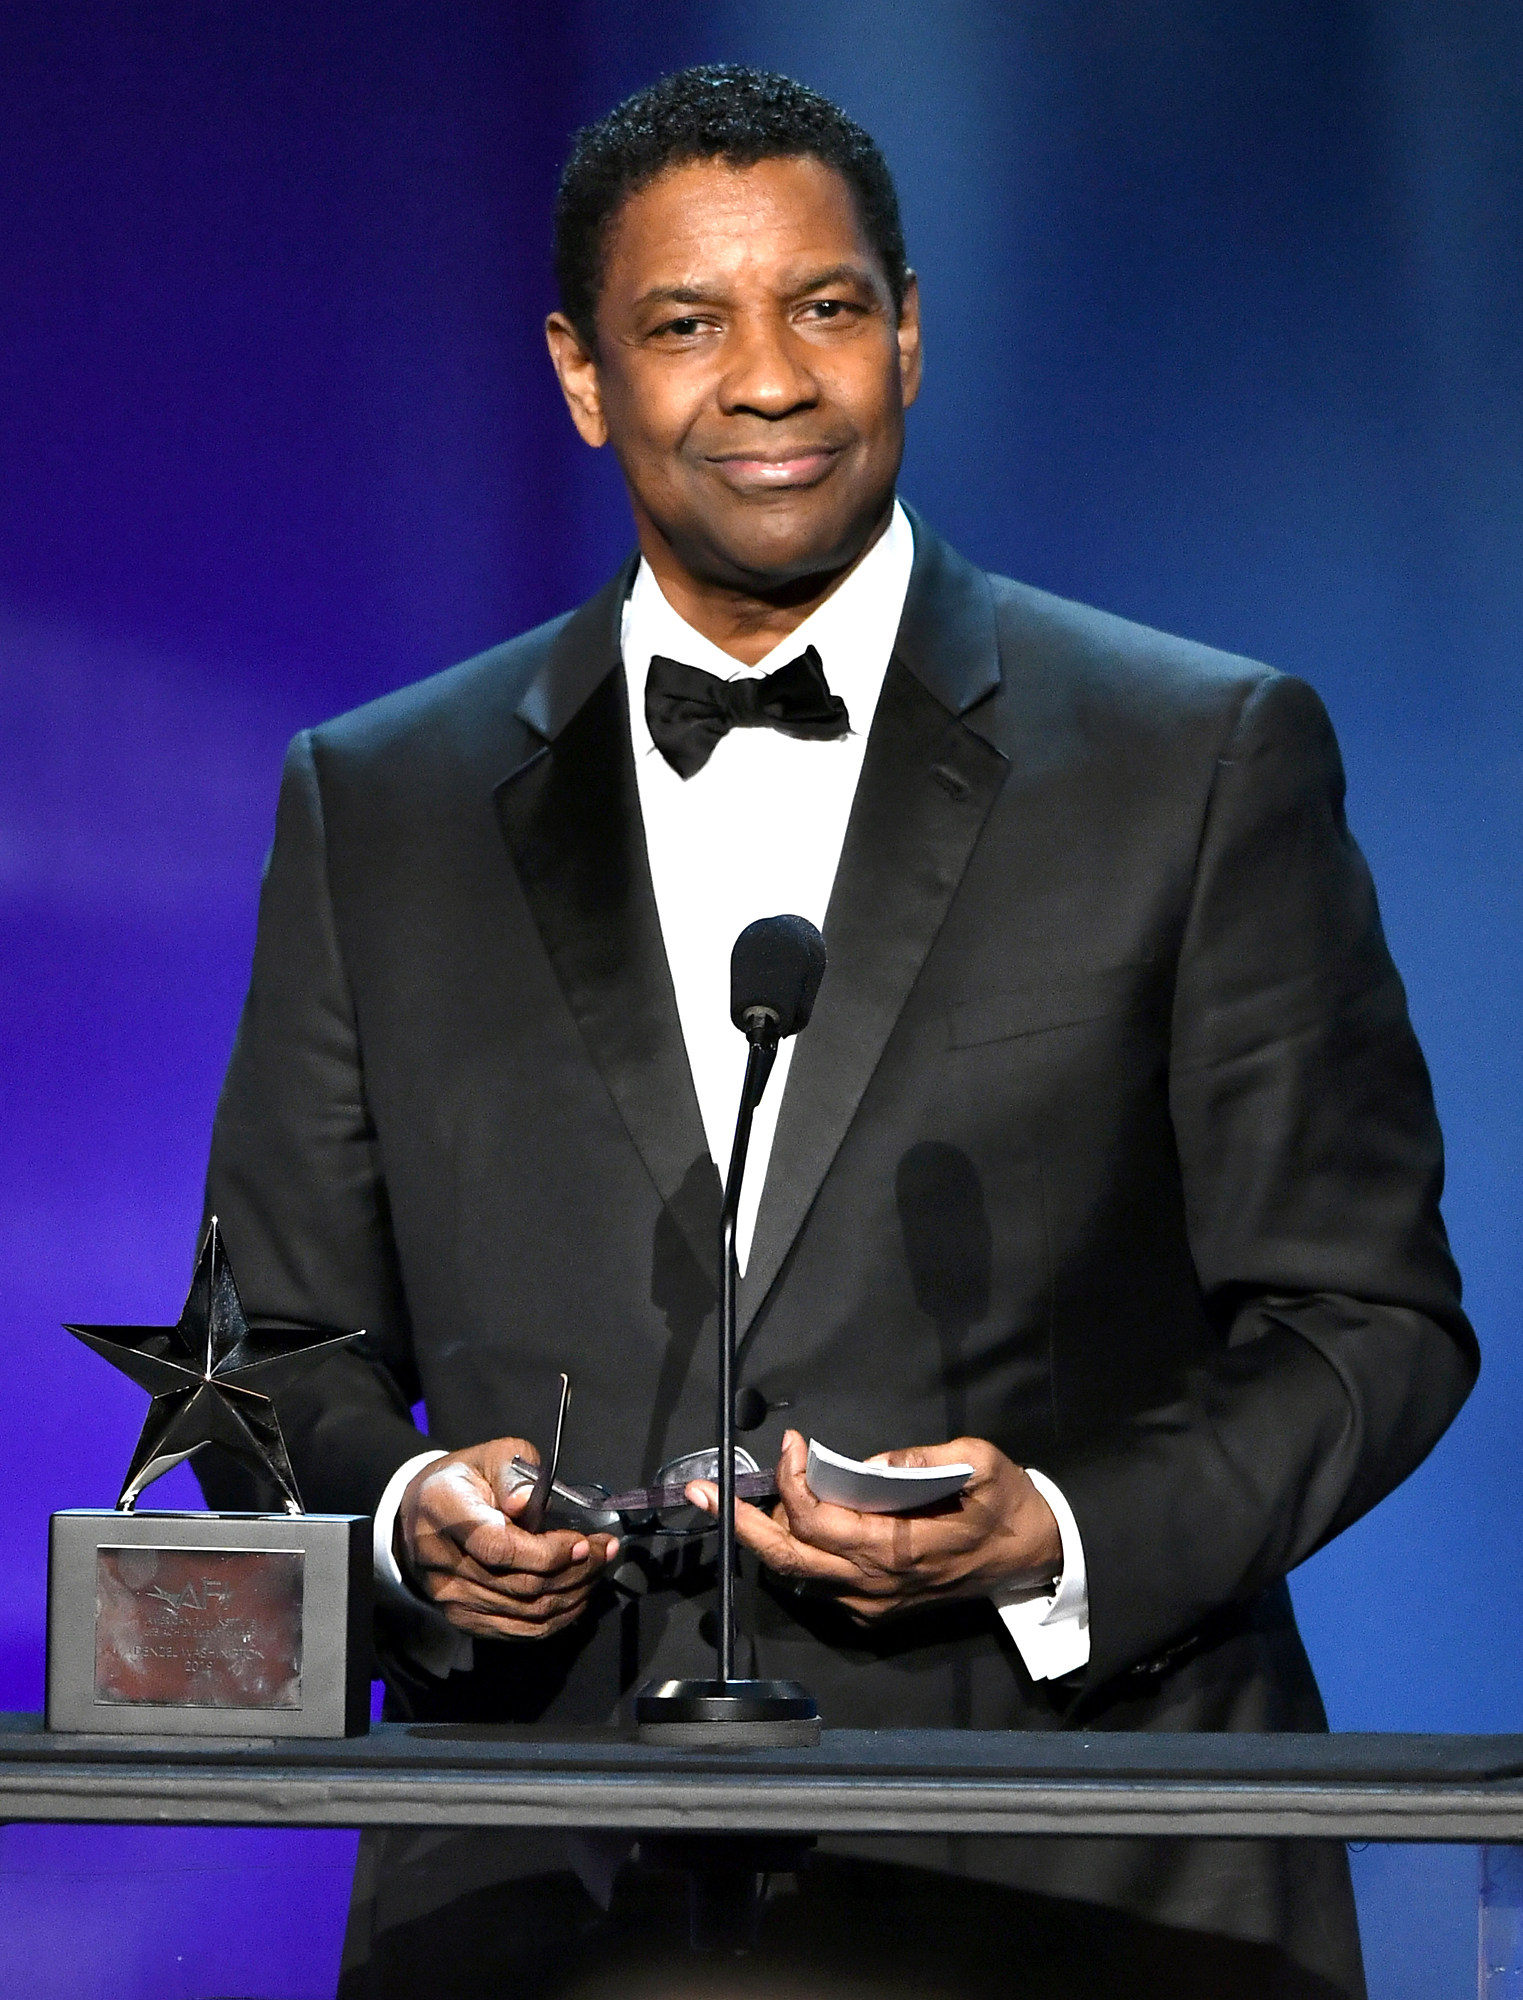 AFI Honors Denzel Washington, Show, Dolby Theatre, Los Angeles, USA - 06 Jun 2019